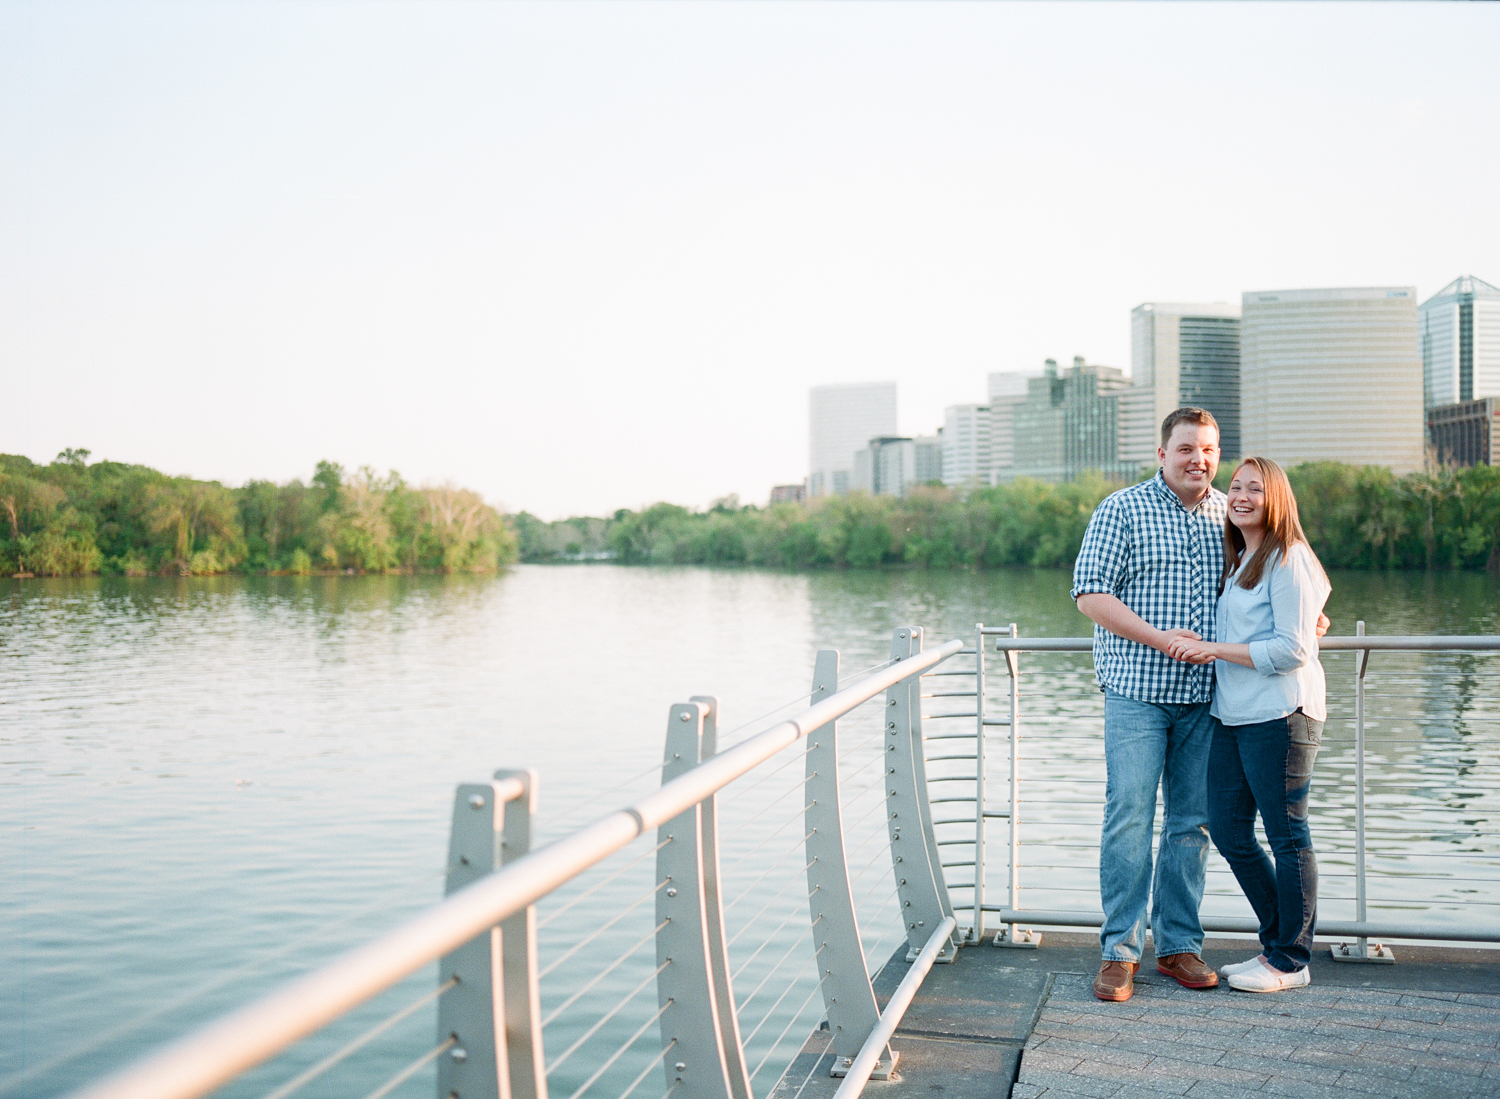 hawkfreddy-georgetown-dc-engagement-22.jpg